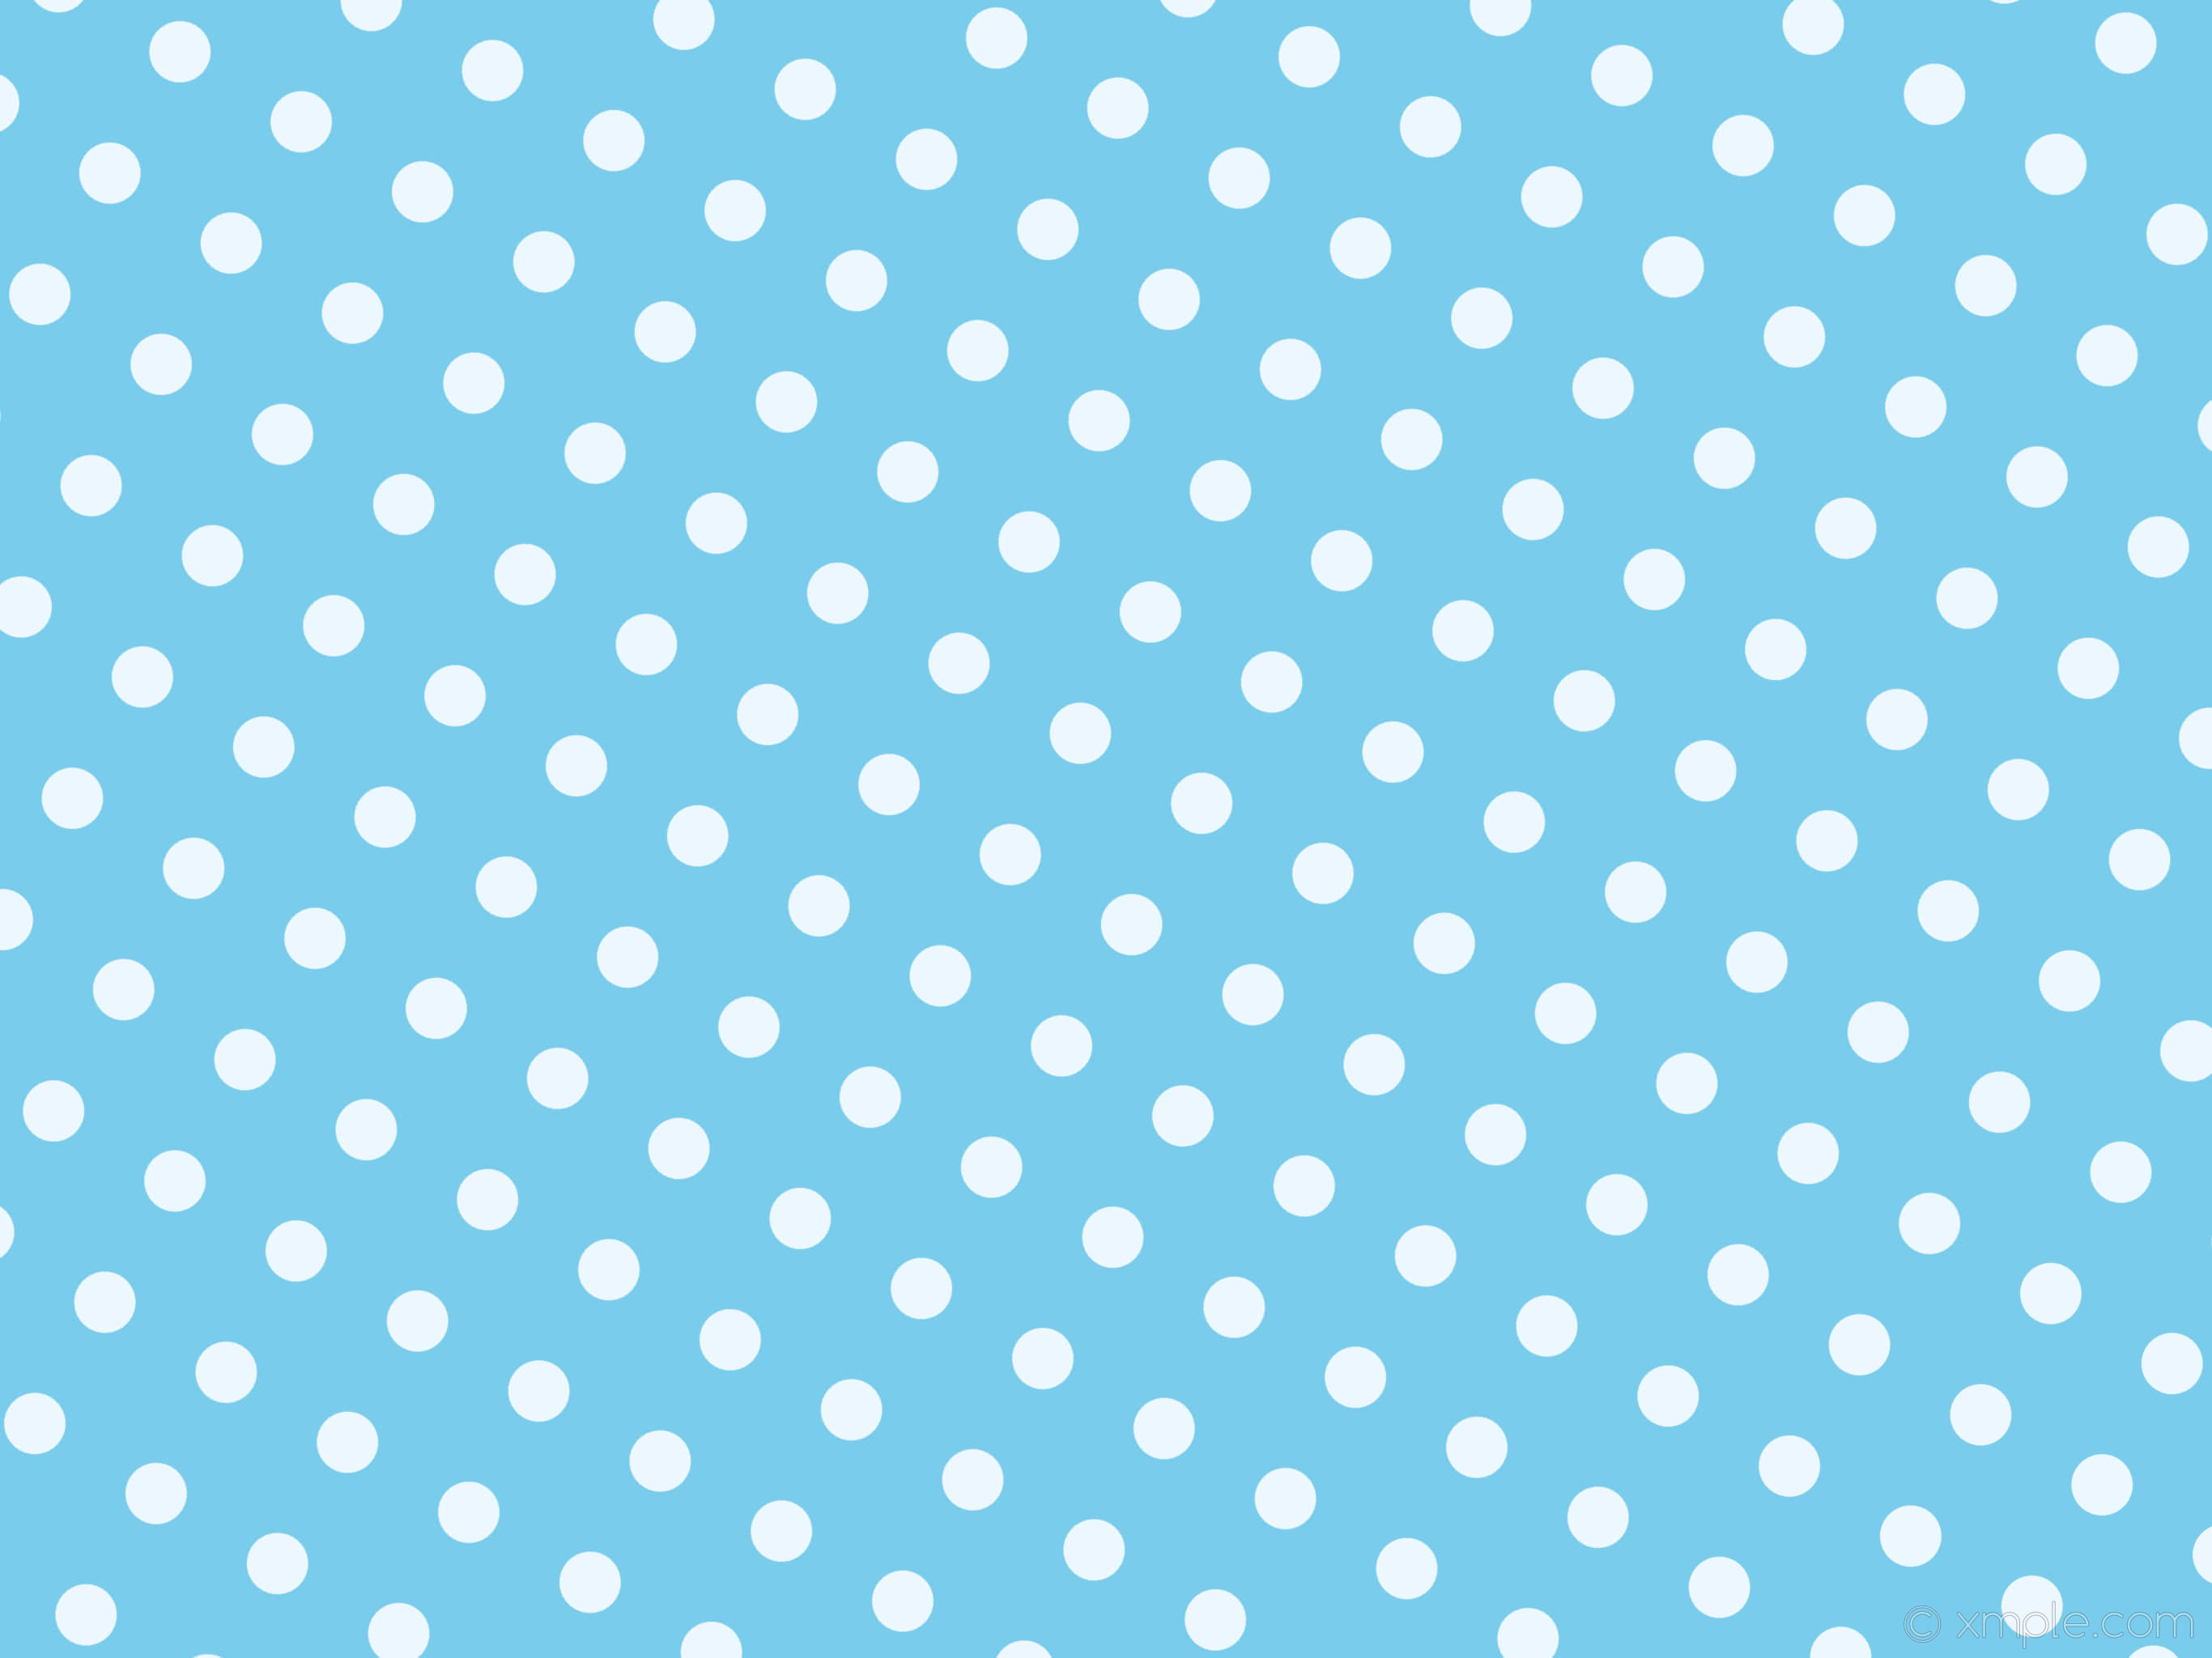 Free White & Blue Polka Dots Background